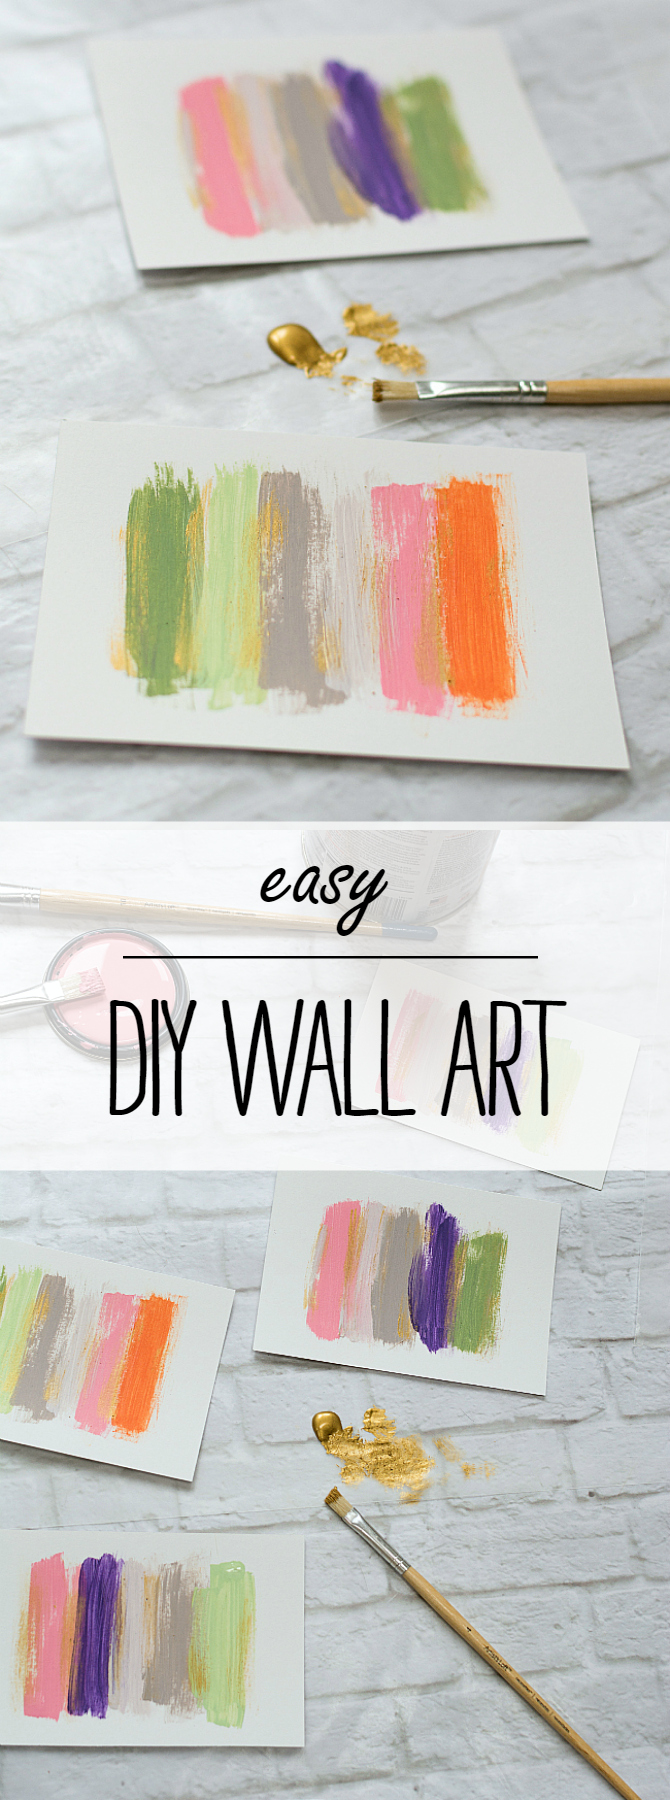 How To Make Easy DIY Wall Art with Paint